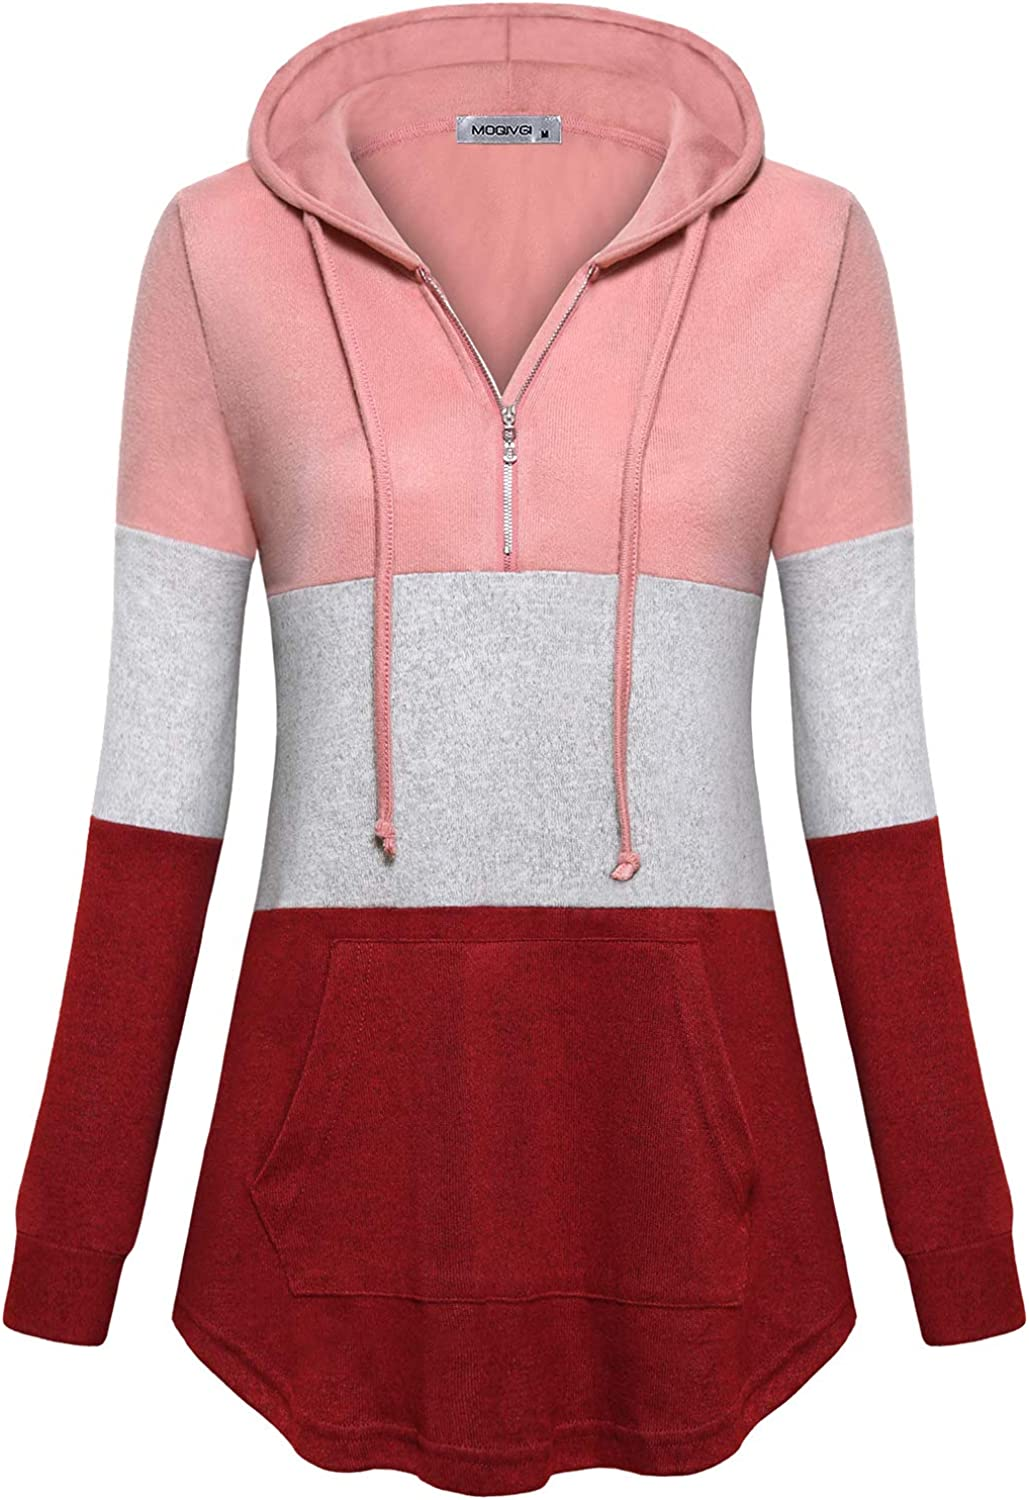 Discount is also underway Luxury MOQIVGI Womens Quarter Zip Pullover Sleeve Long Hoodies Color Bl